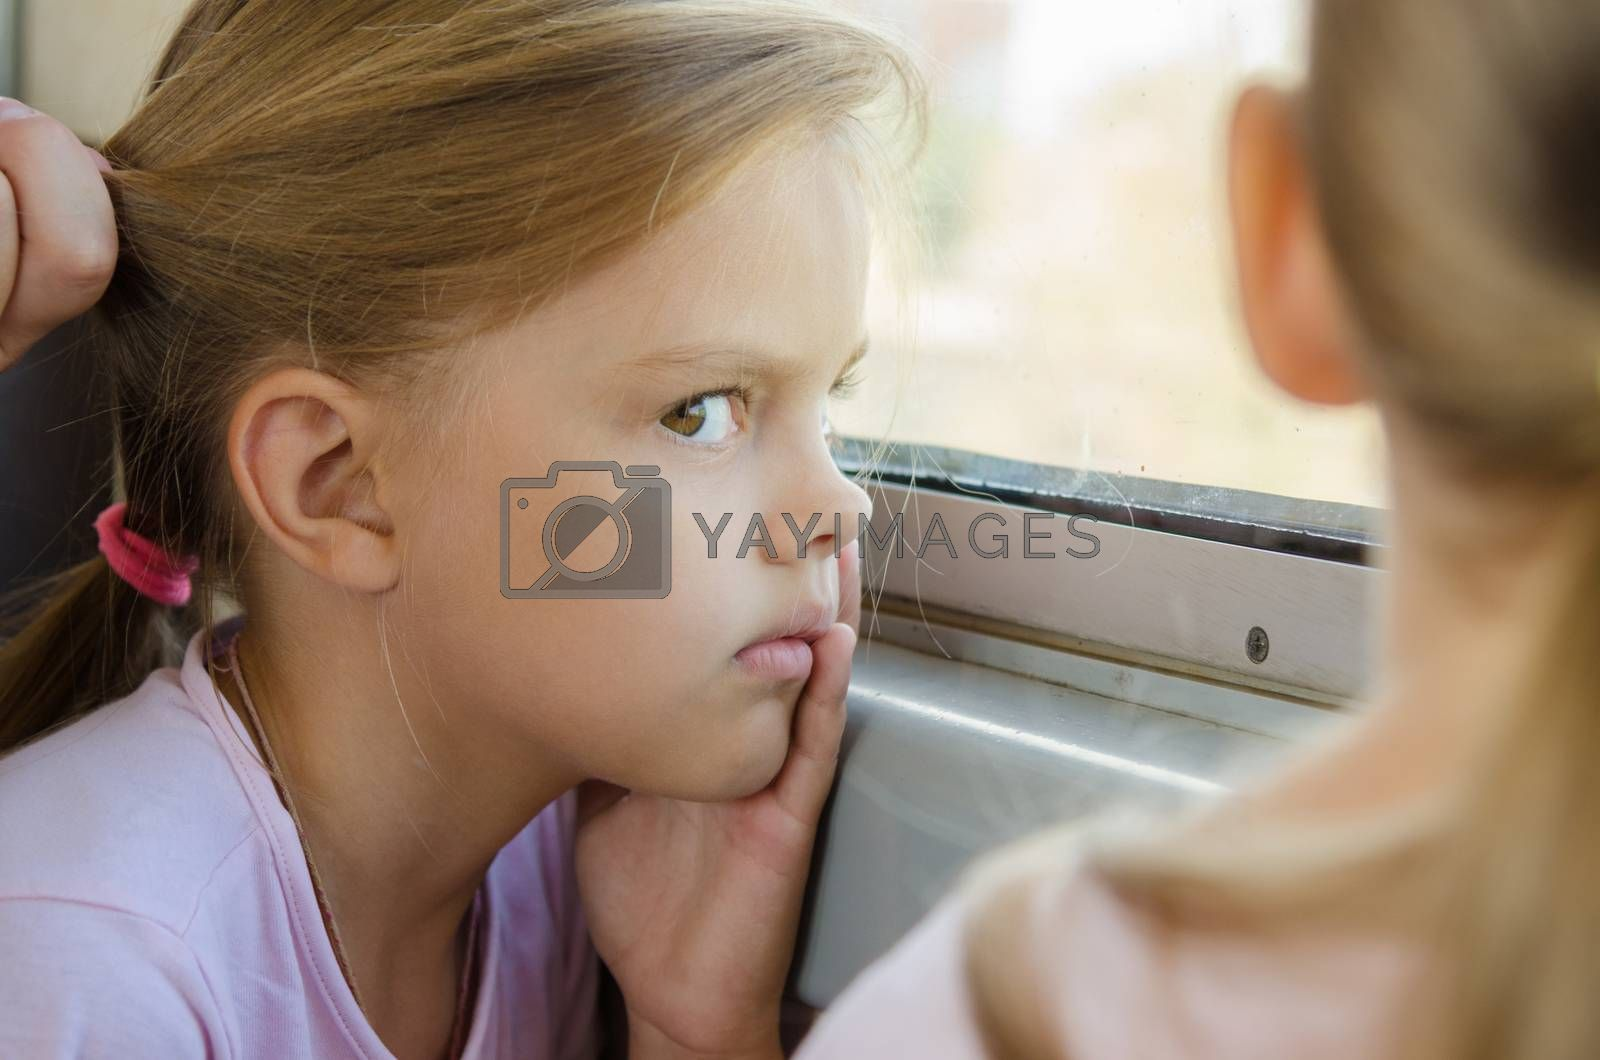 The girl glared at the other girl sitting near electric windows